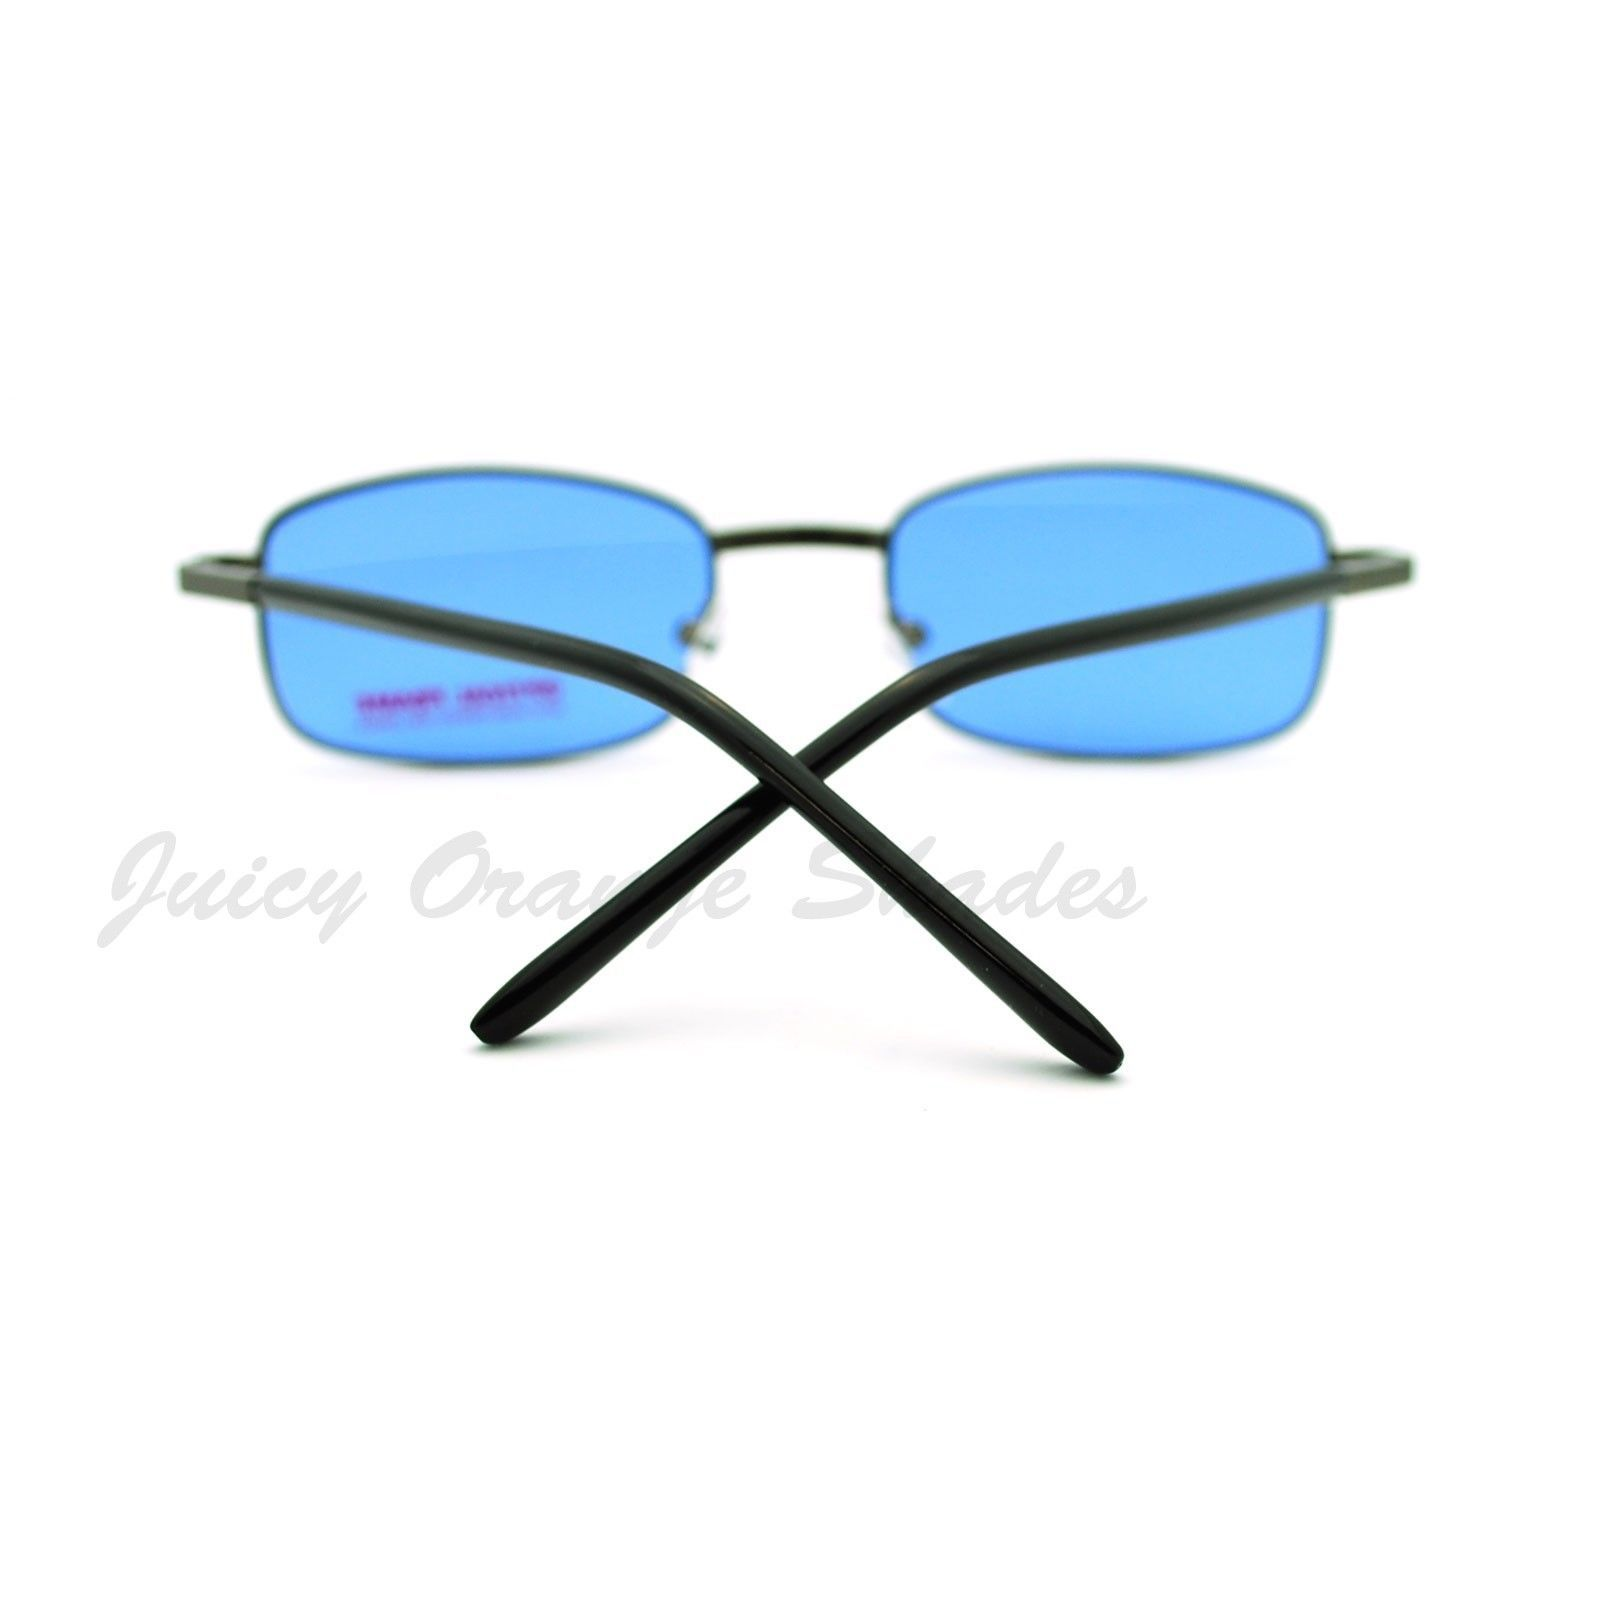 Thin Metal Rectangular Frame Sunglasses Unisex 8 Colorful Lens